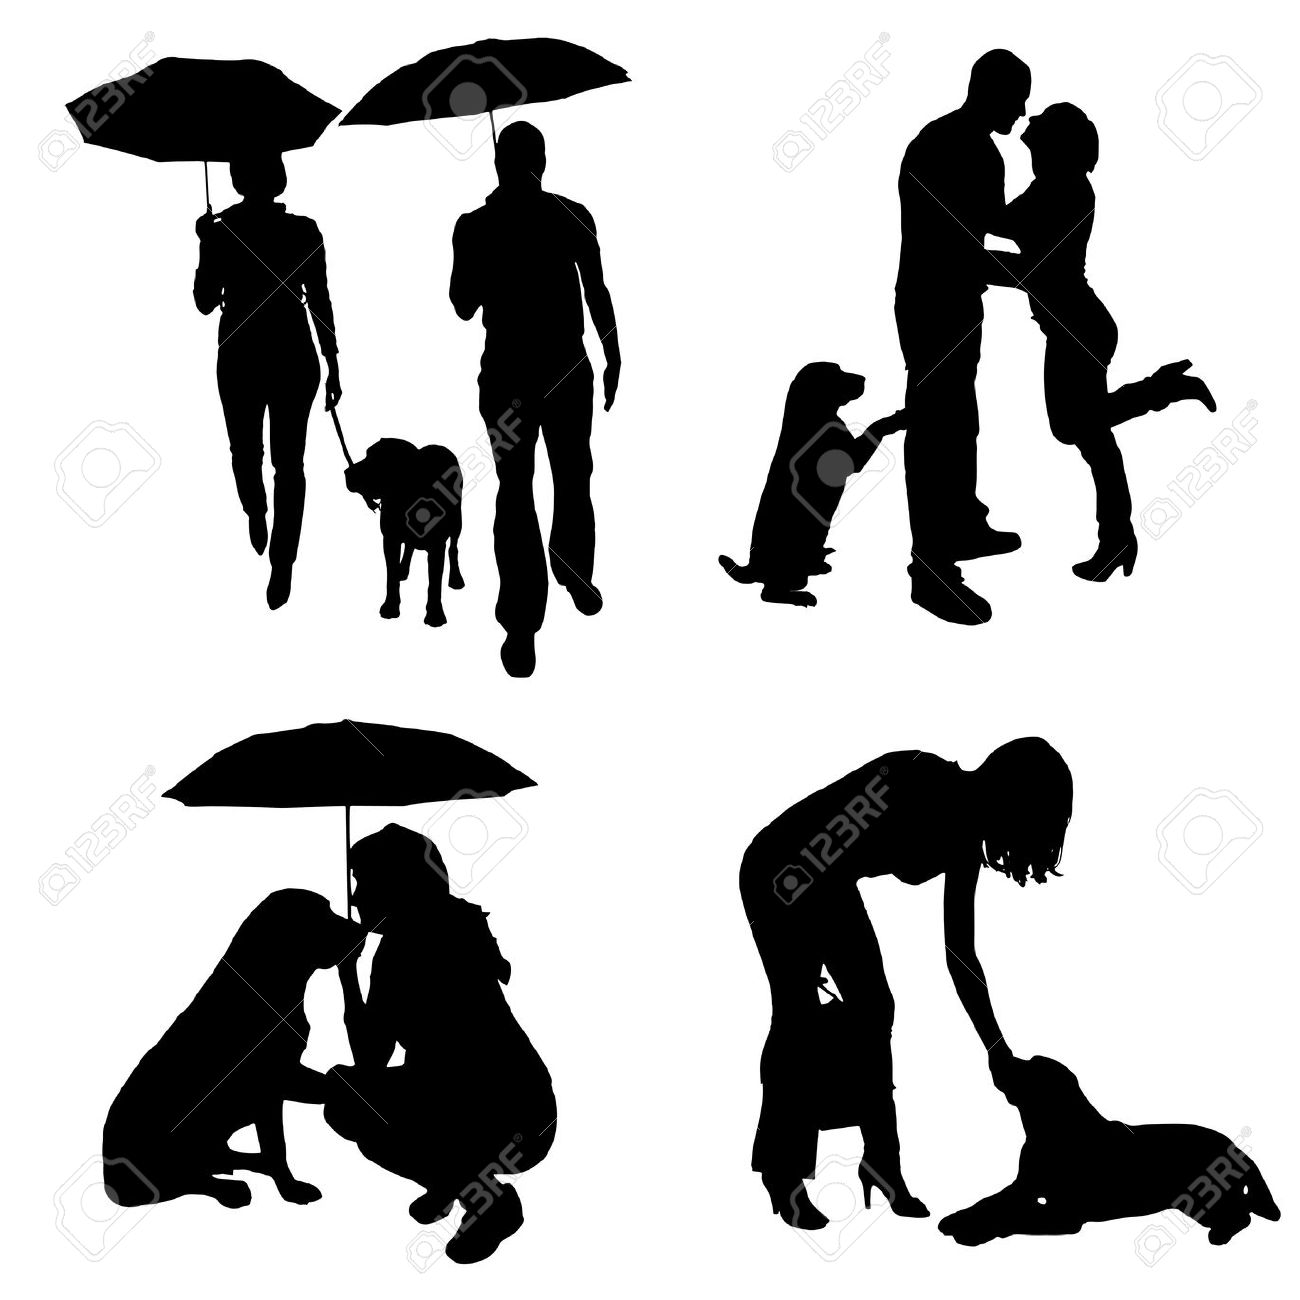 Girl Holding Umbrella Silhouette at GetDrawings   Free